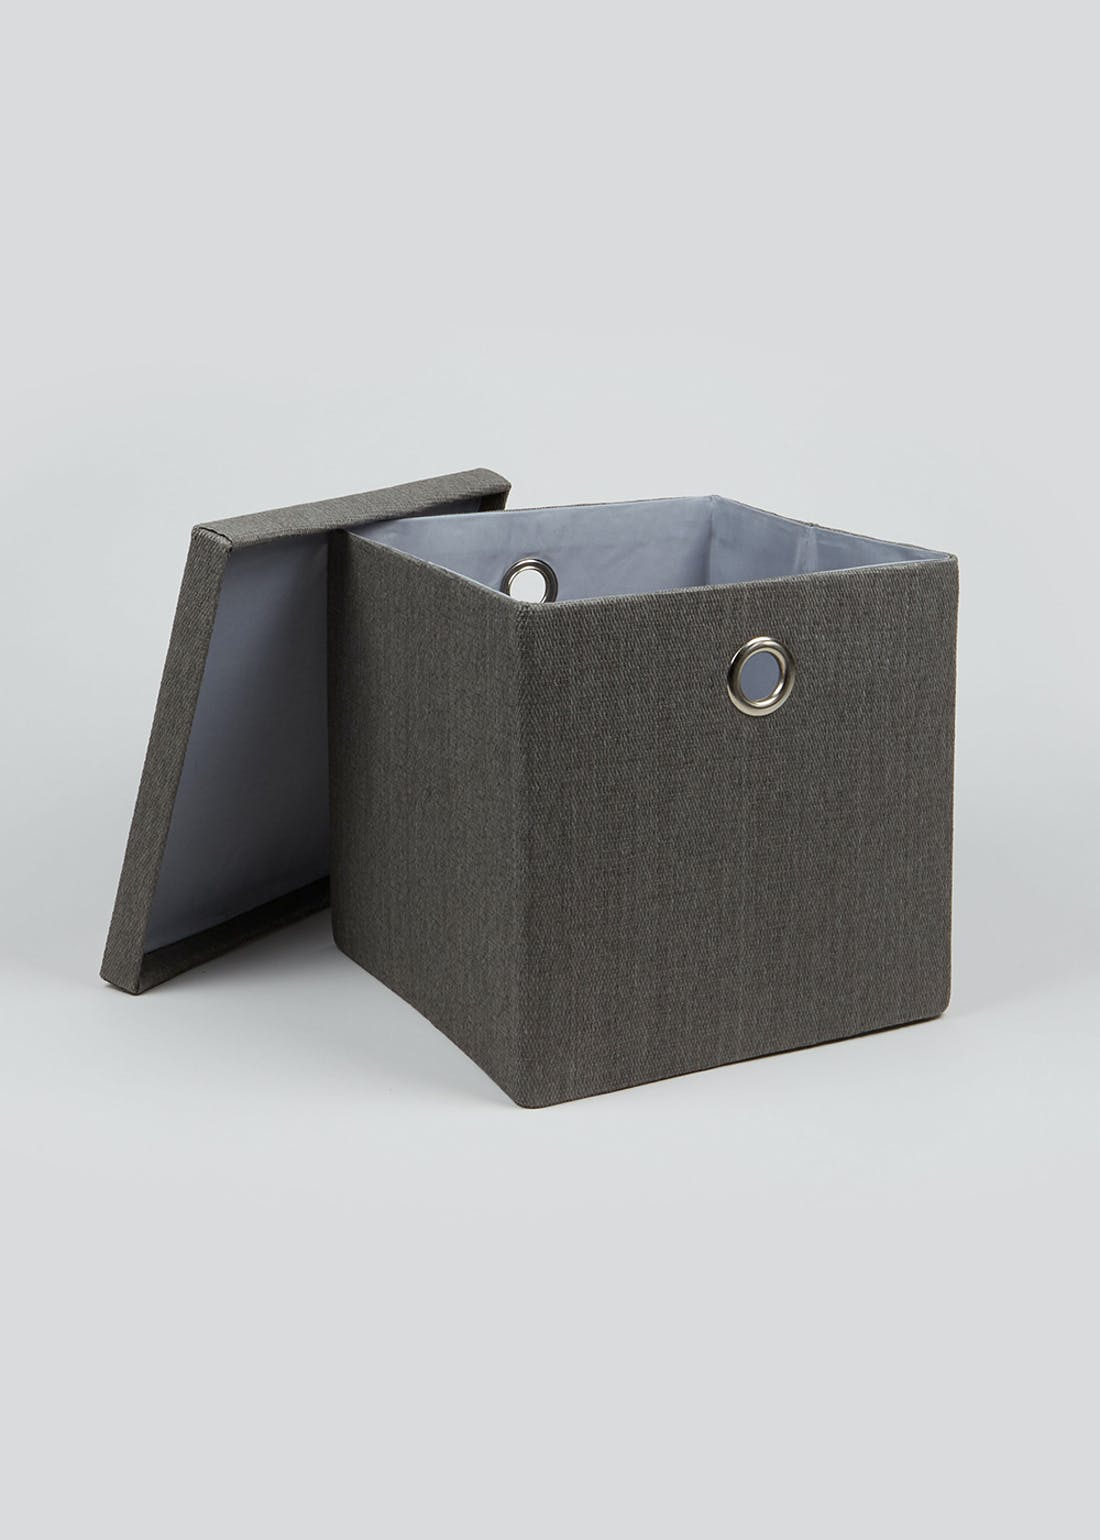 Foldable Fabric Storage Box (32cm x 32cm x 32cm)